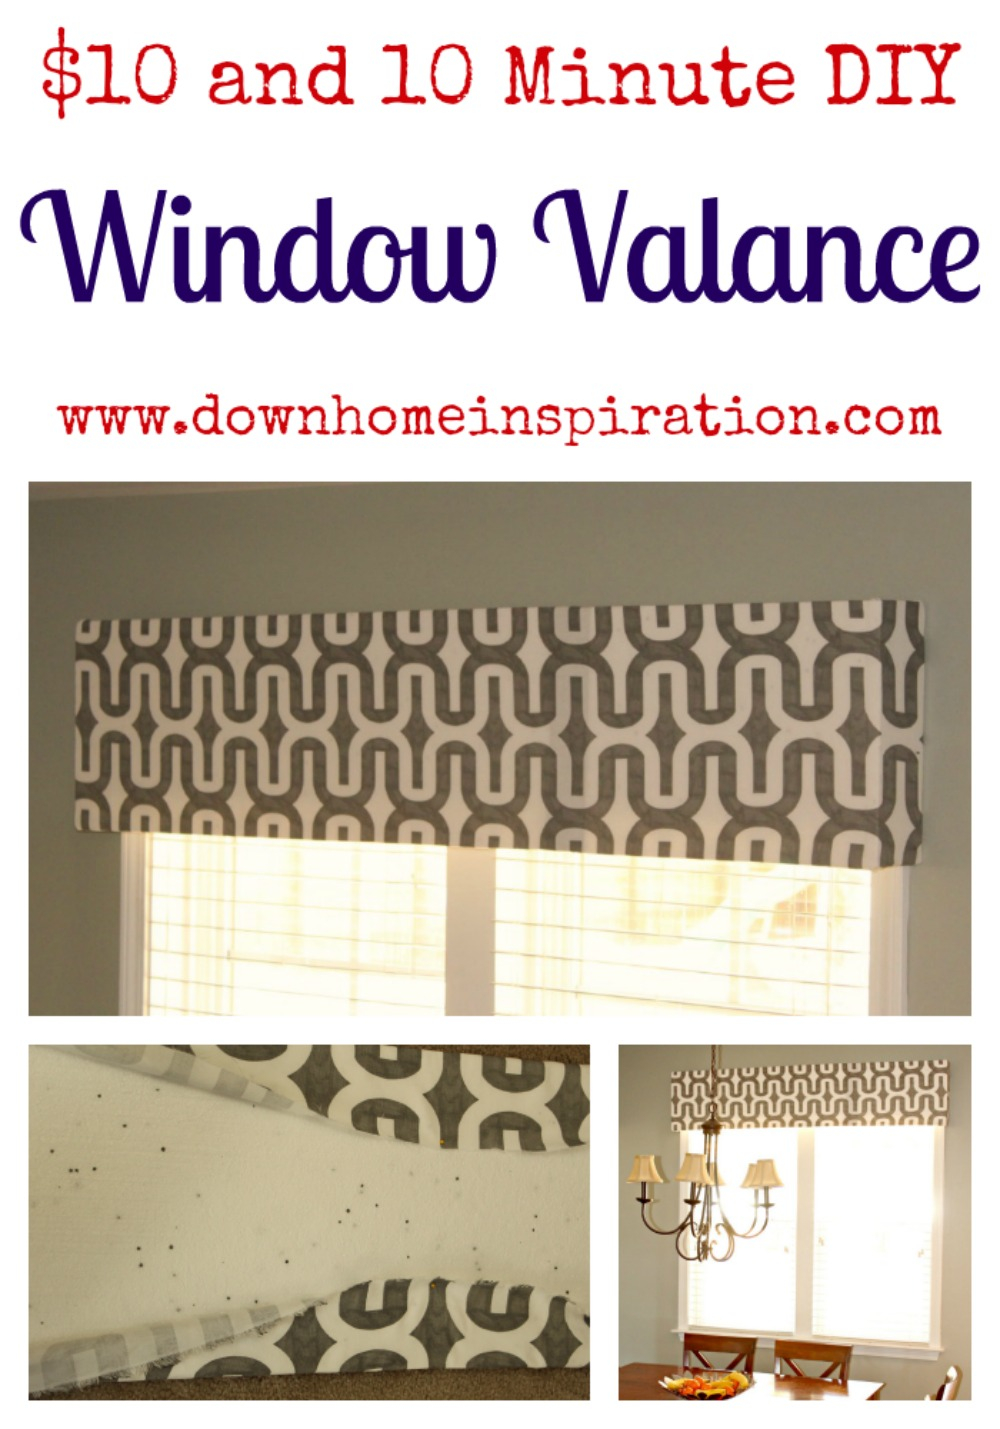 diy window valance simple because this post has become so popular ive since updated it by showing how to hang the valance with no damage and holes be renter friendly 10 10 minute diy window valance down home inspiration